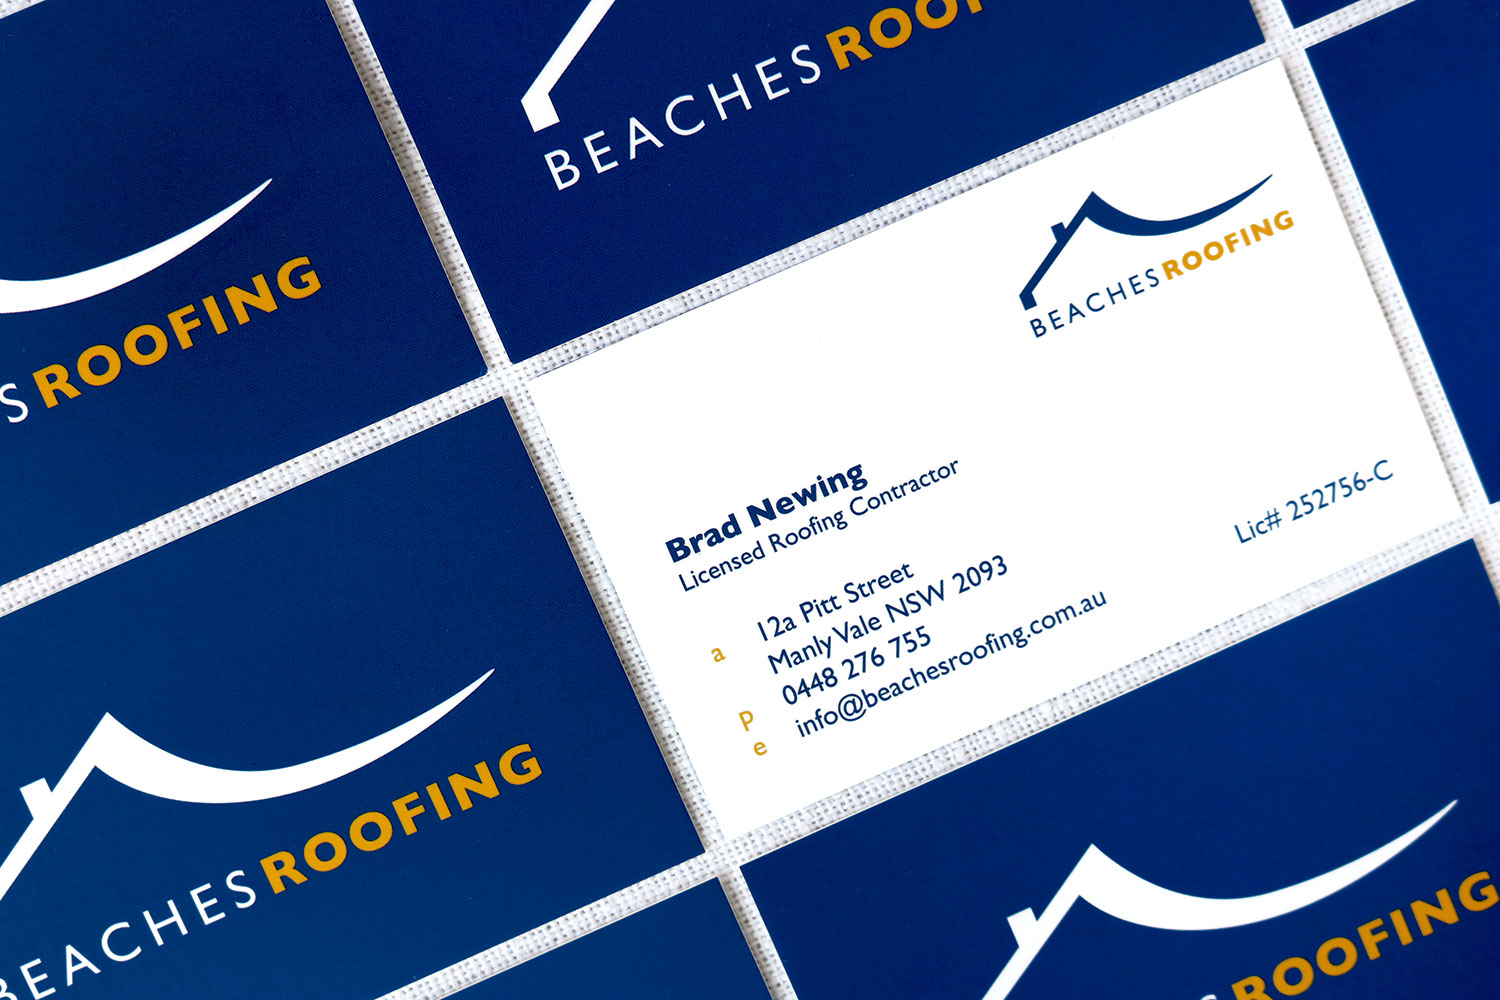 Beaches Roofing Business Cards